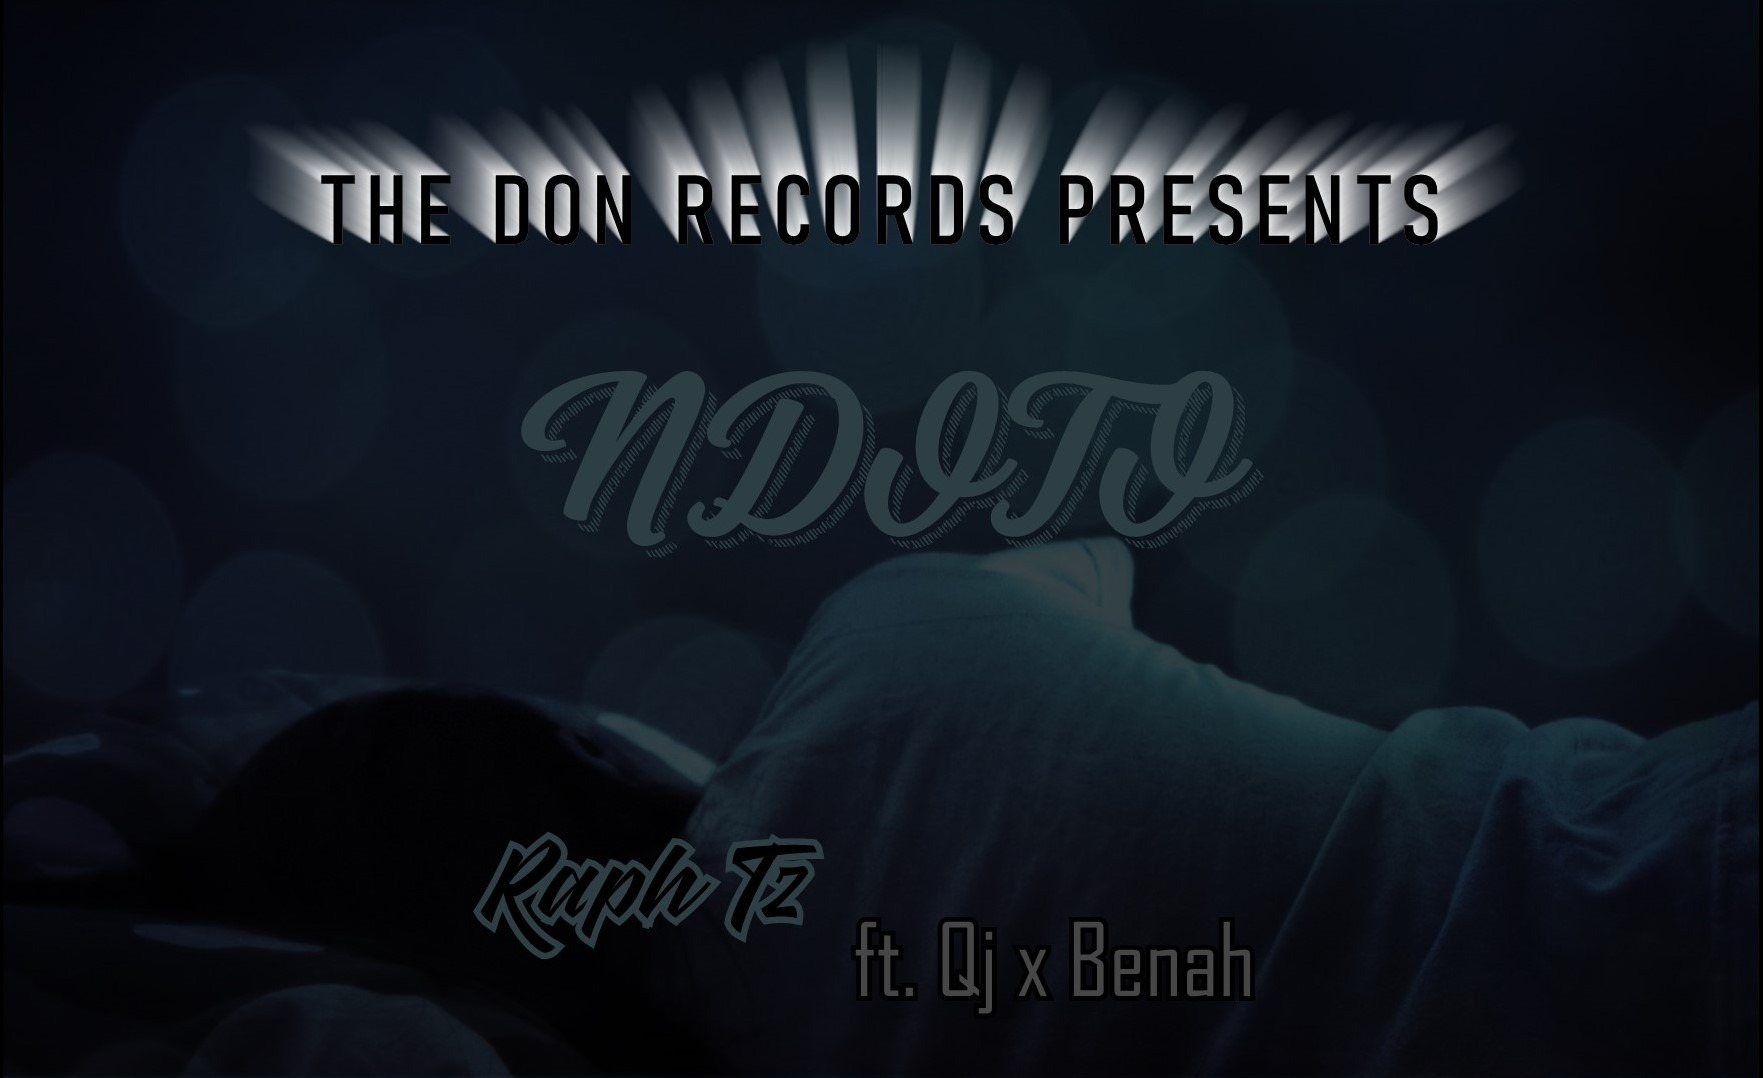 Raph Tz ft. Qj x Benah - Ndoto | Download